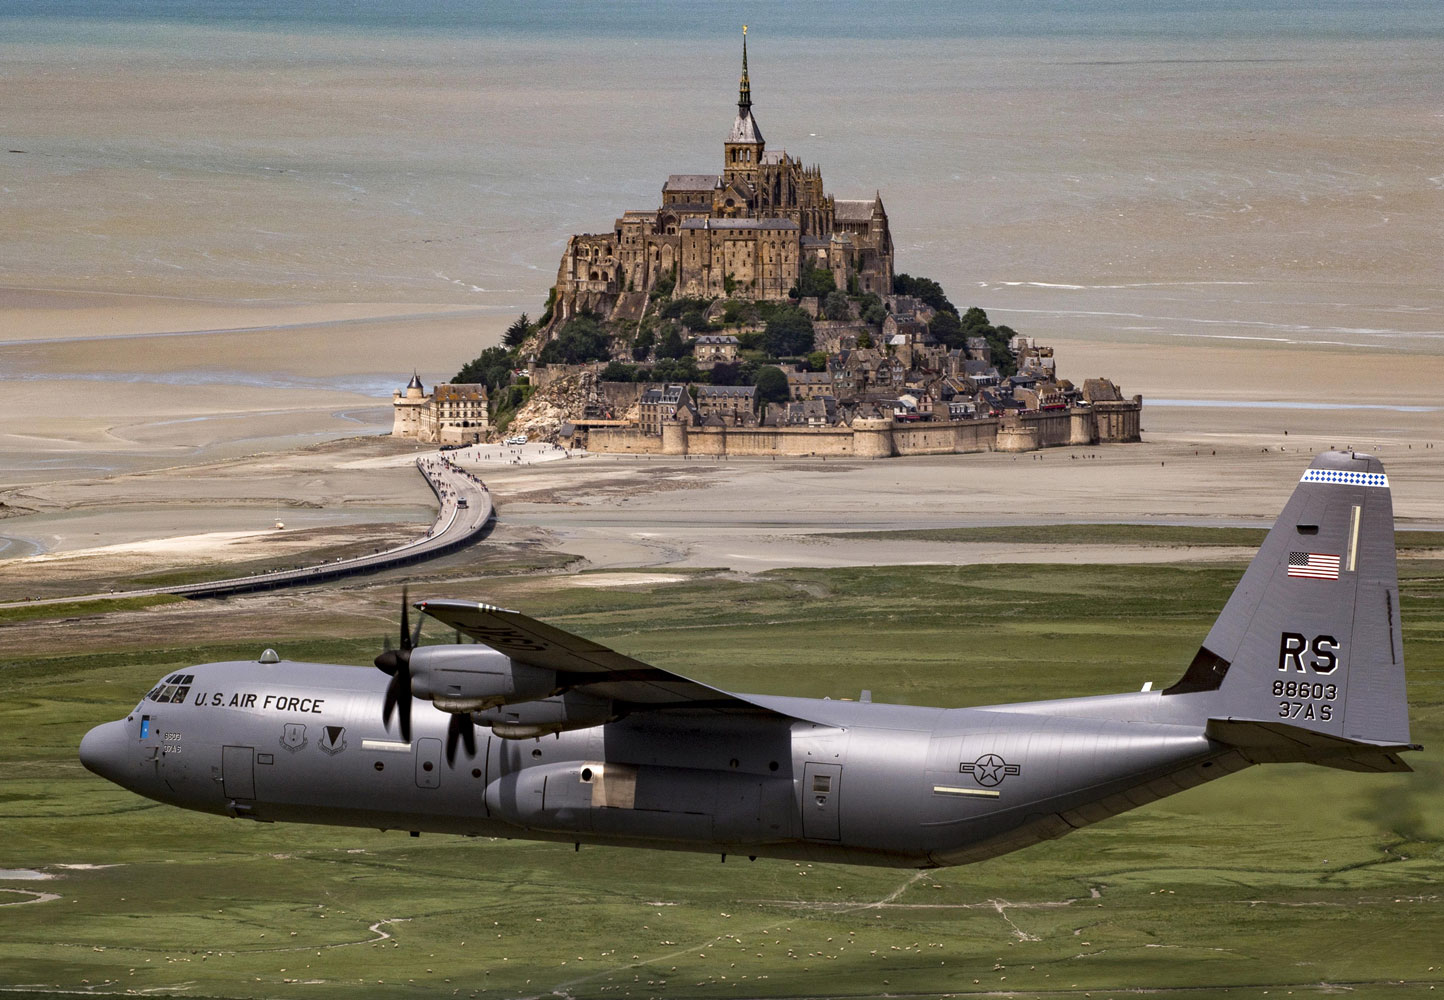 Air Force Brig. Gen. Richard G. Moore Jr. flies a C-130J Super Hercules past Mont Saint-Michel in Normandy, France, June 3, 2017, during an event commemorating the 73rd anniversary of D-Day.